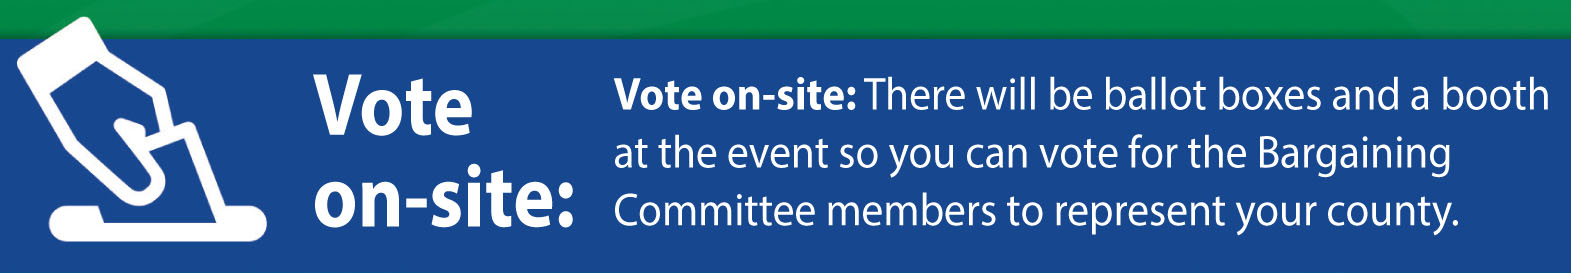 Vote on site segment